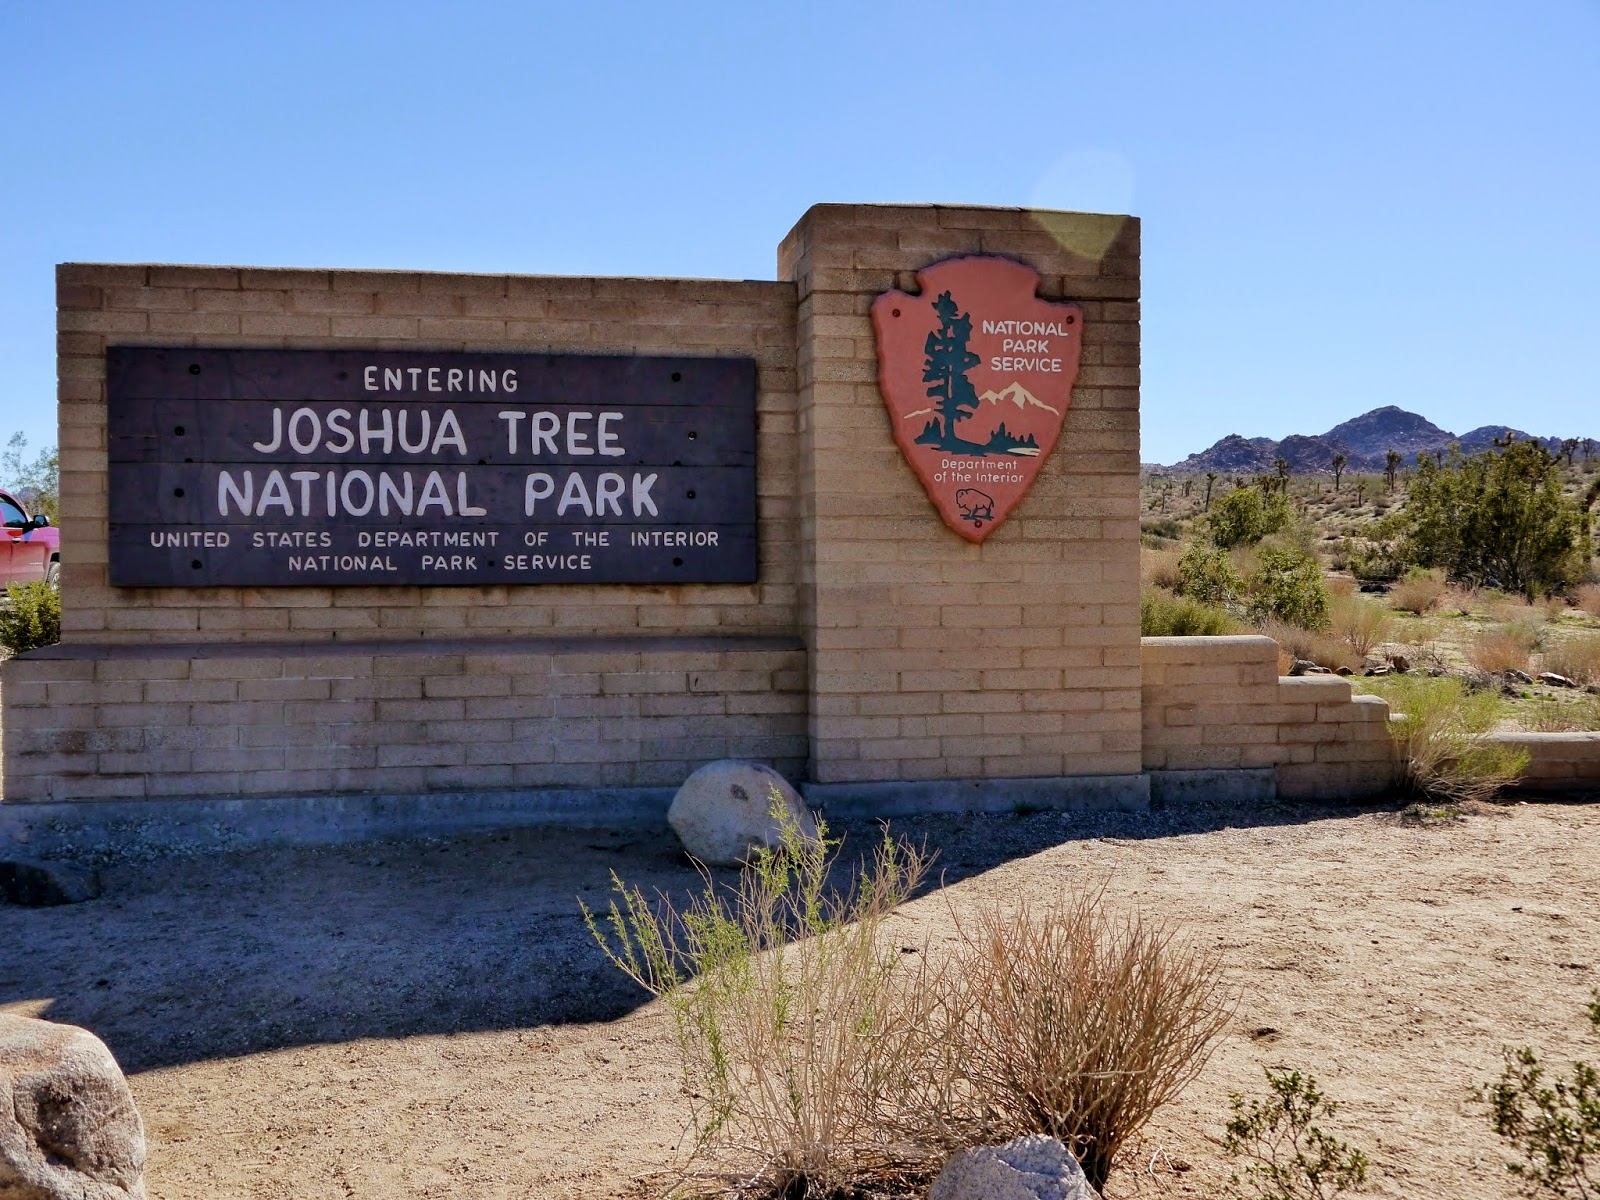 joshua tree national park mature singles The joshua tree is the fifth studio album by irish rock band u2 it was produced  by daniel  the producers encouraged an interest in older songs, especially  american roots music  it is a common misconception that the site is within  joshua tree national park, when in fact it is over 200 miles away from the park  in 2011.